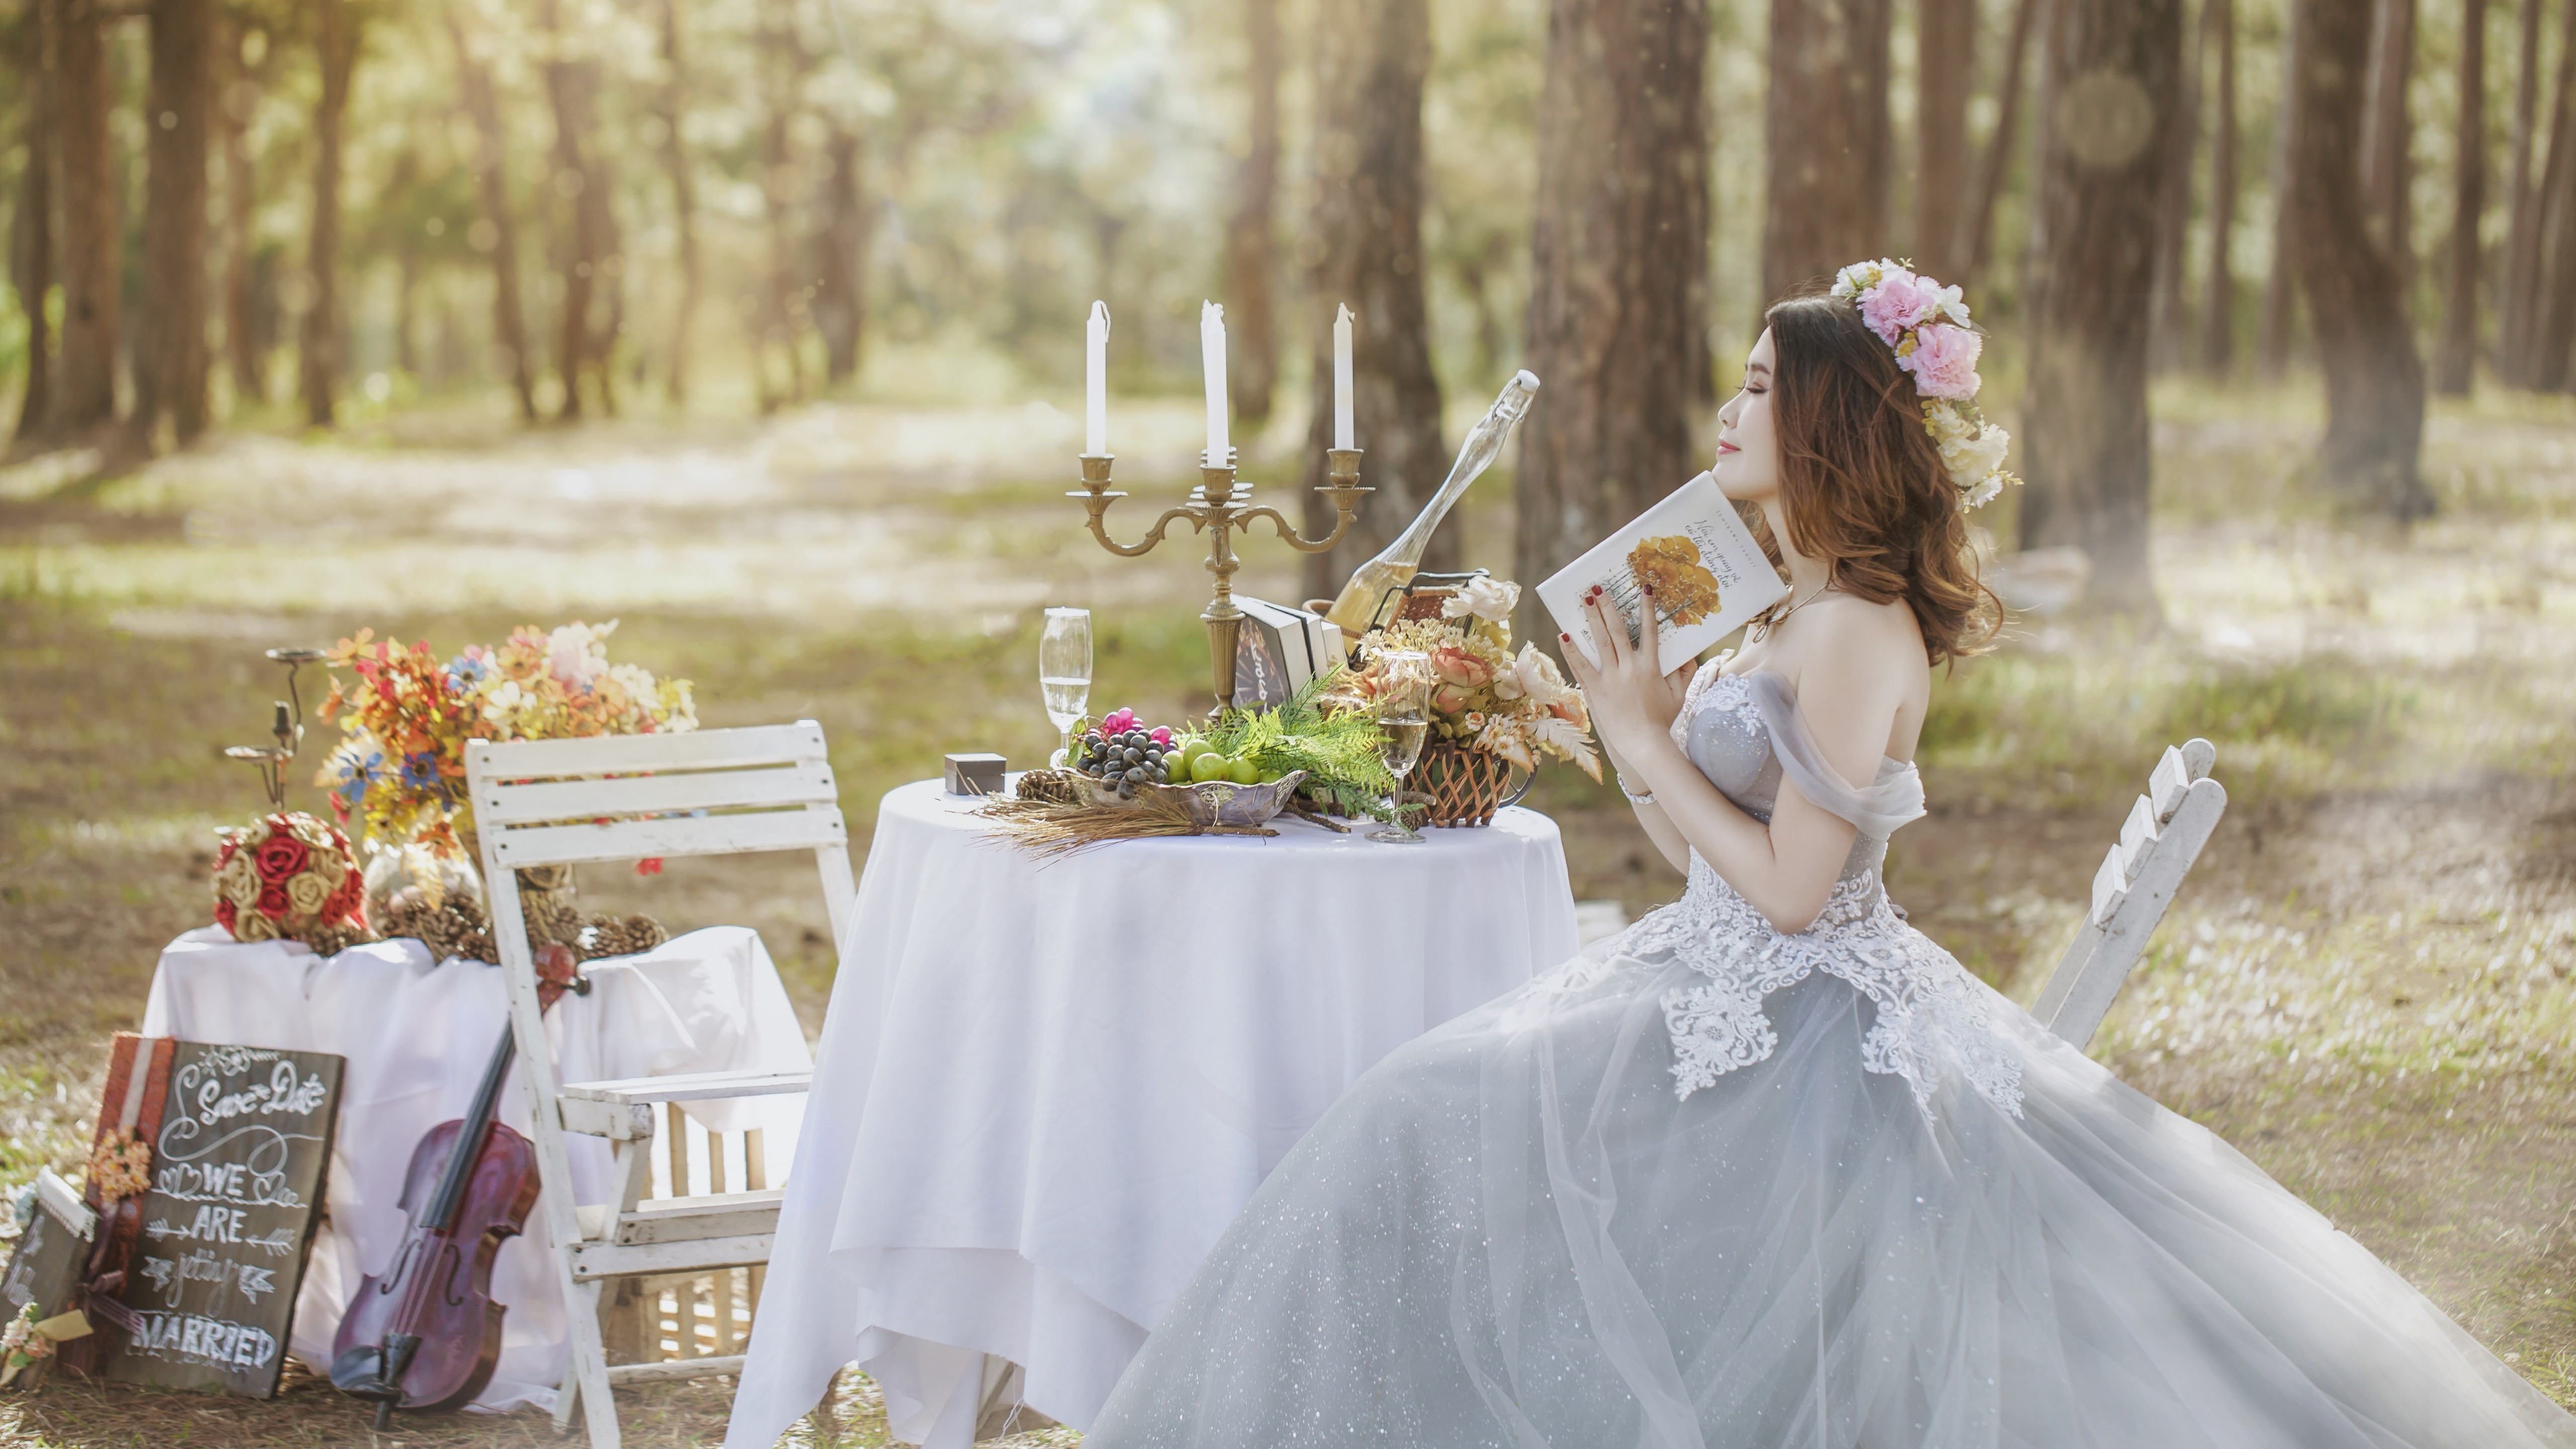 Bride in wedding outdoor scenery | 5120x2880 wallpaper